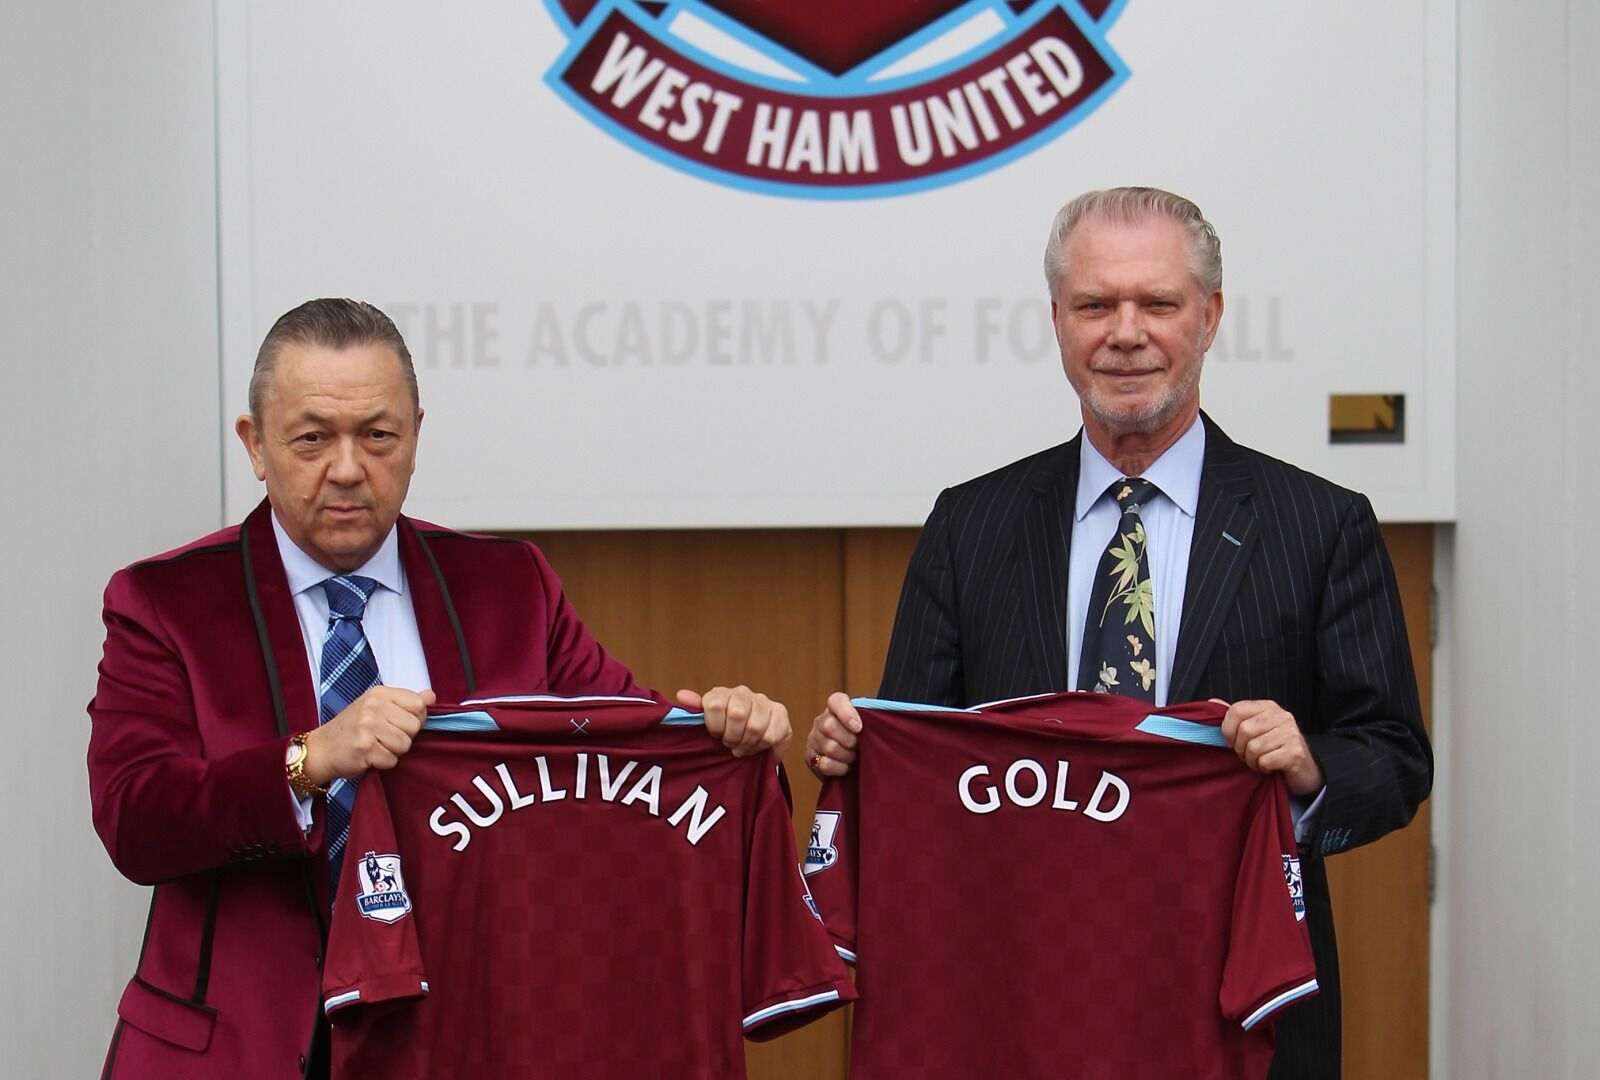 Why it's time for Sullivan and Gold to Sell West Ham United